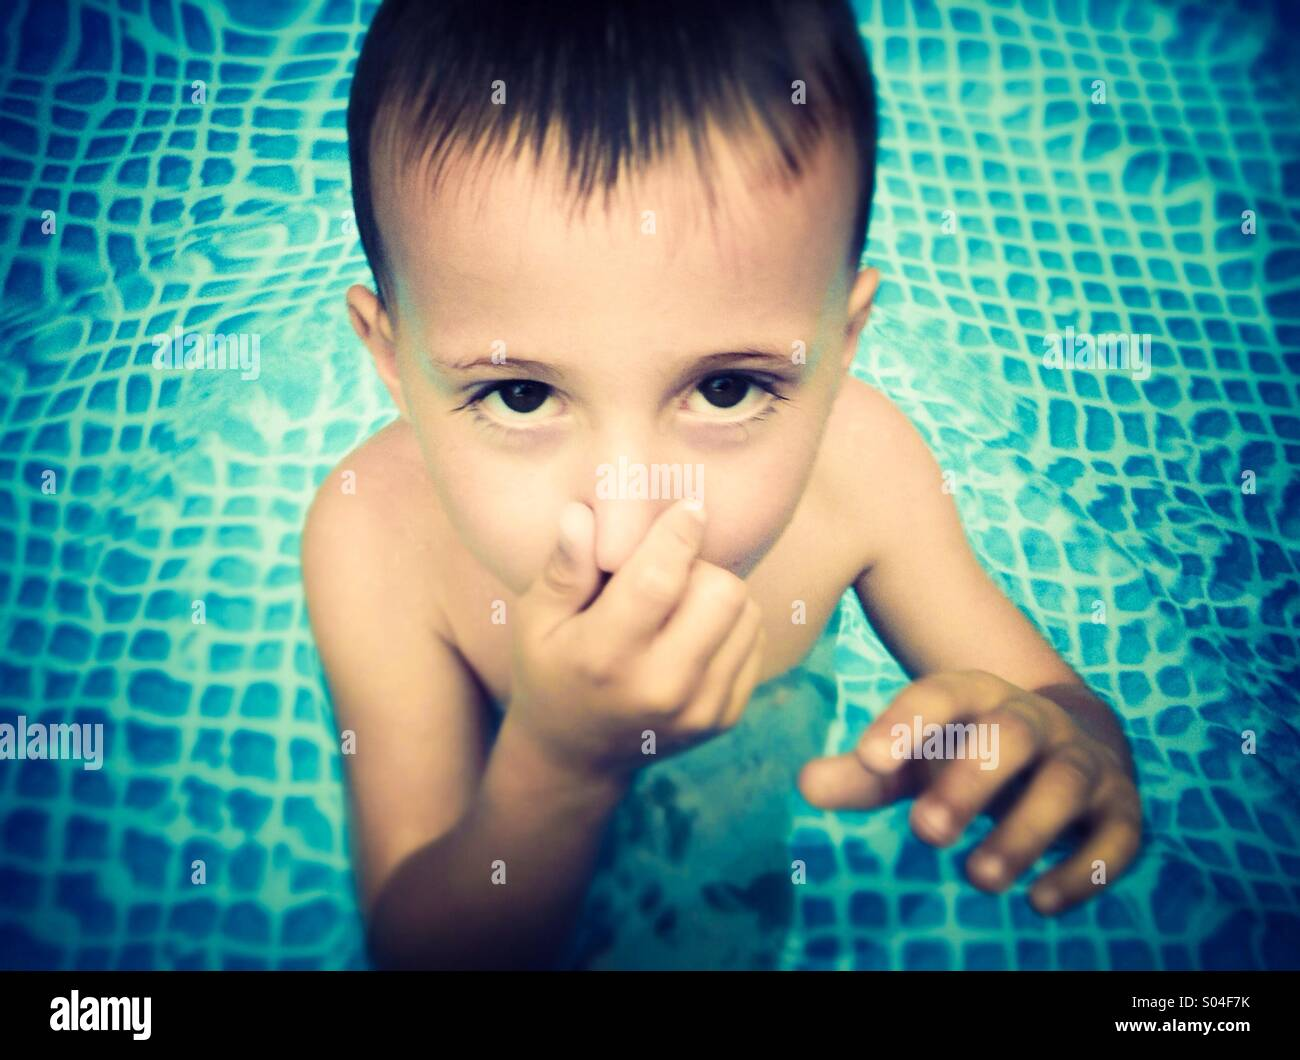 Boy pinch his nose in a swimming poolStock Photo